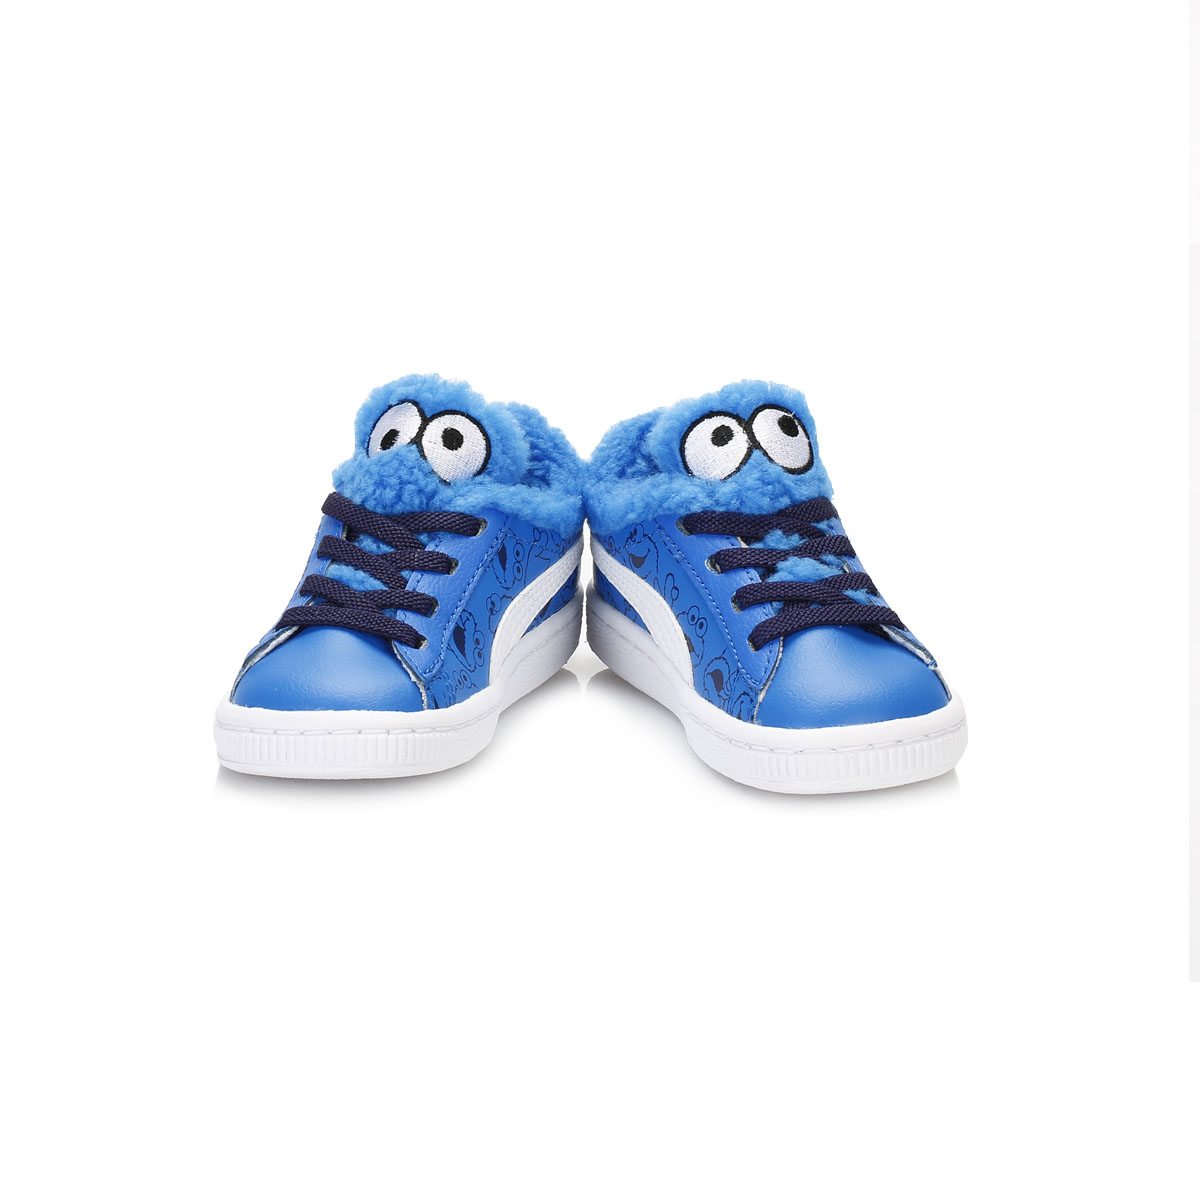 Puma Infant Trainers Blue Cookie Monster Kids Leather